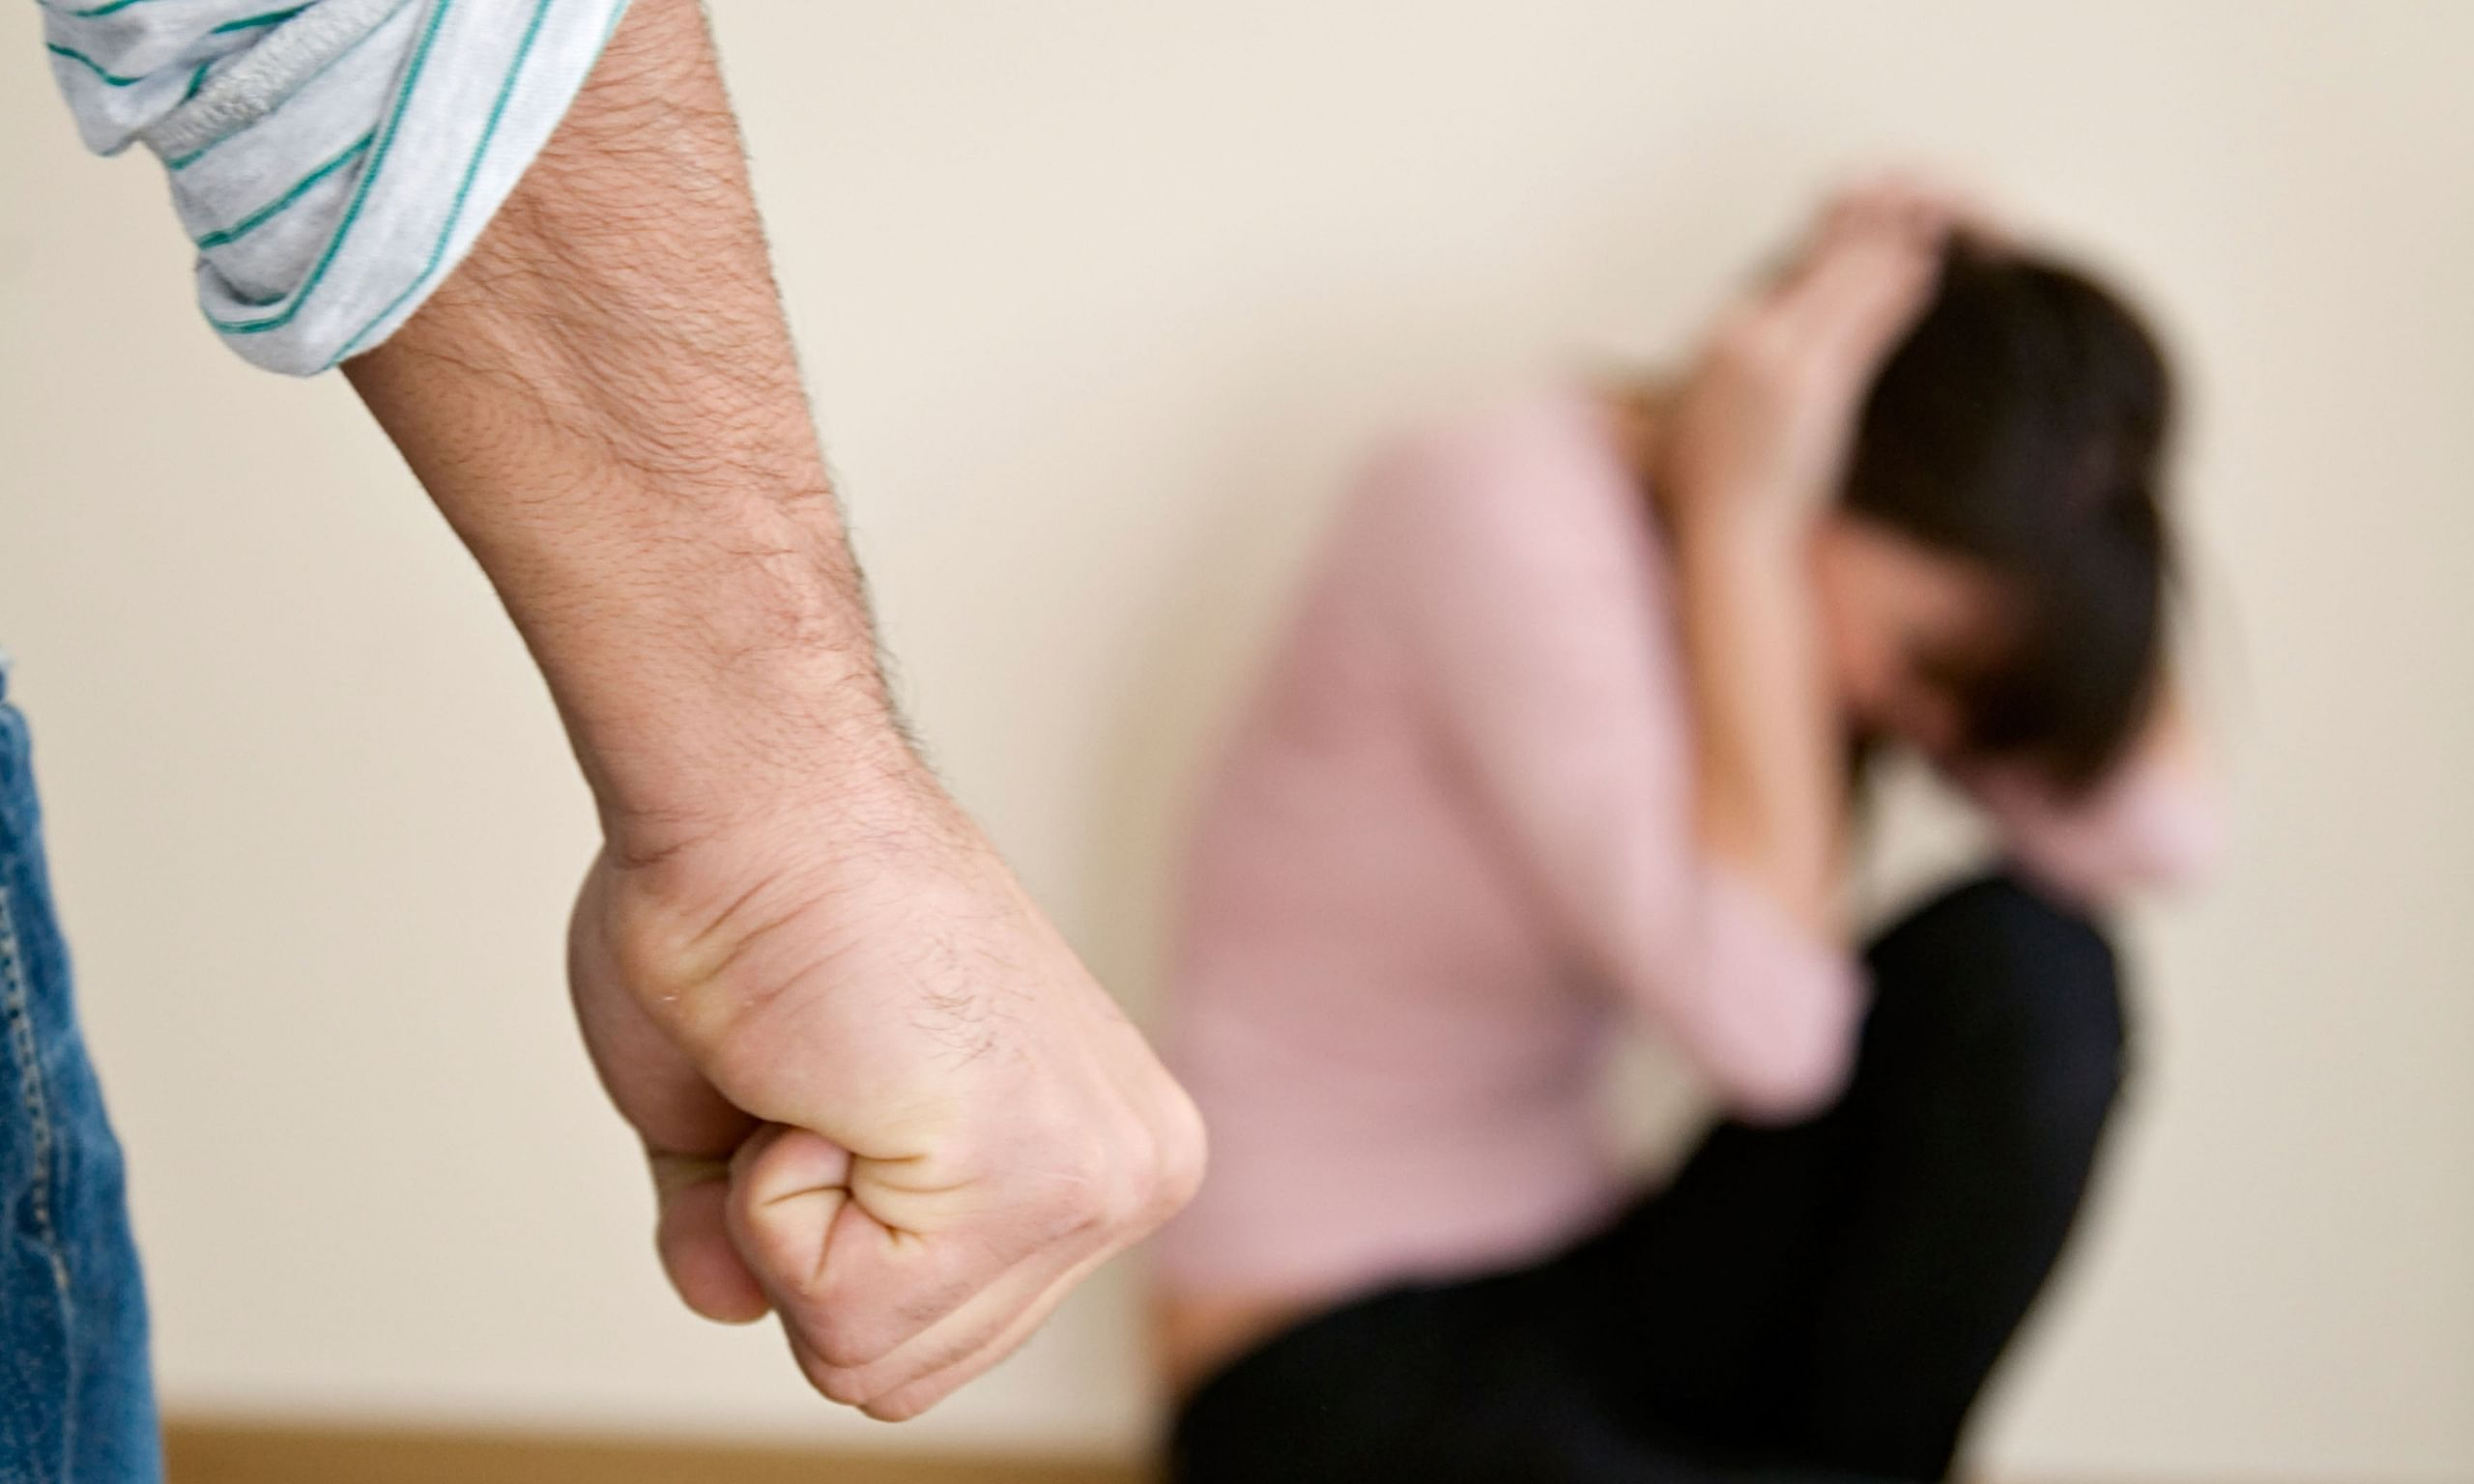 Image result for Domestic Violence- Can Law Prevent It or Does Man Need to Change Attitude?